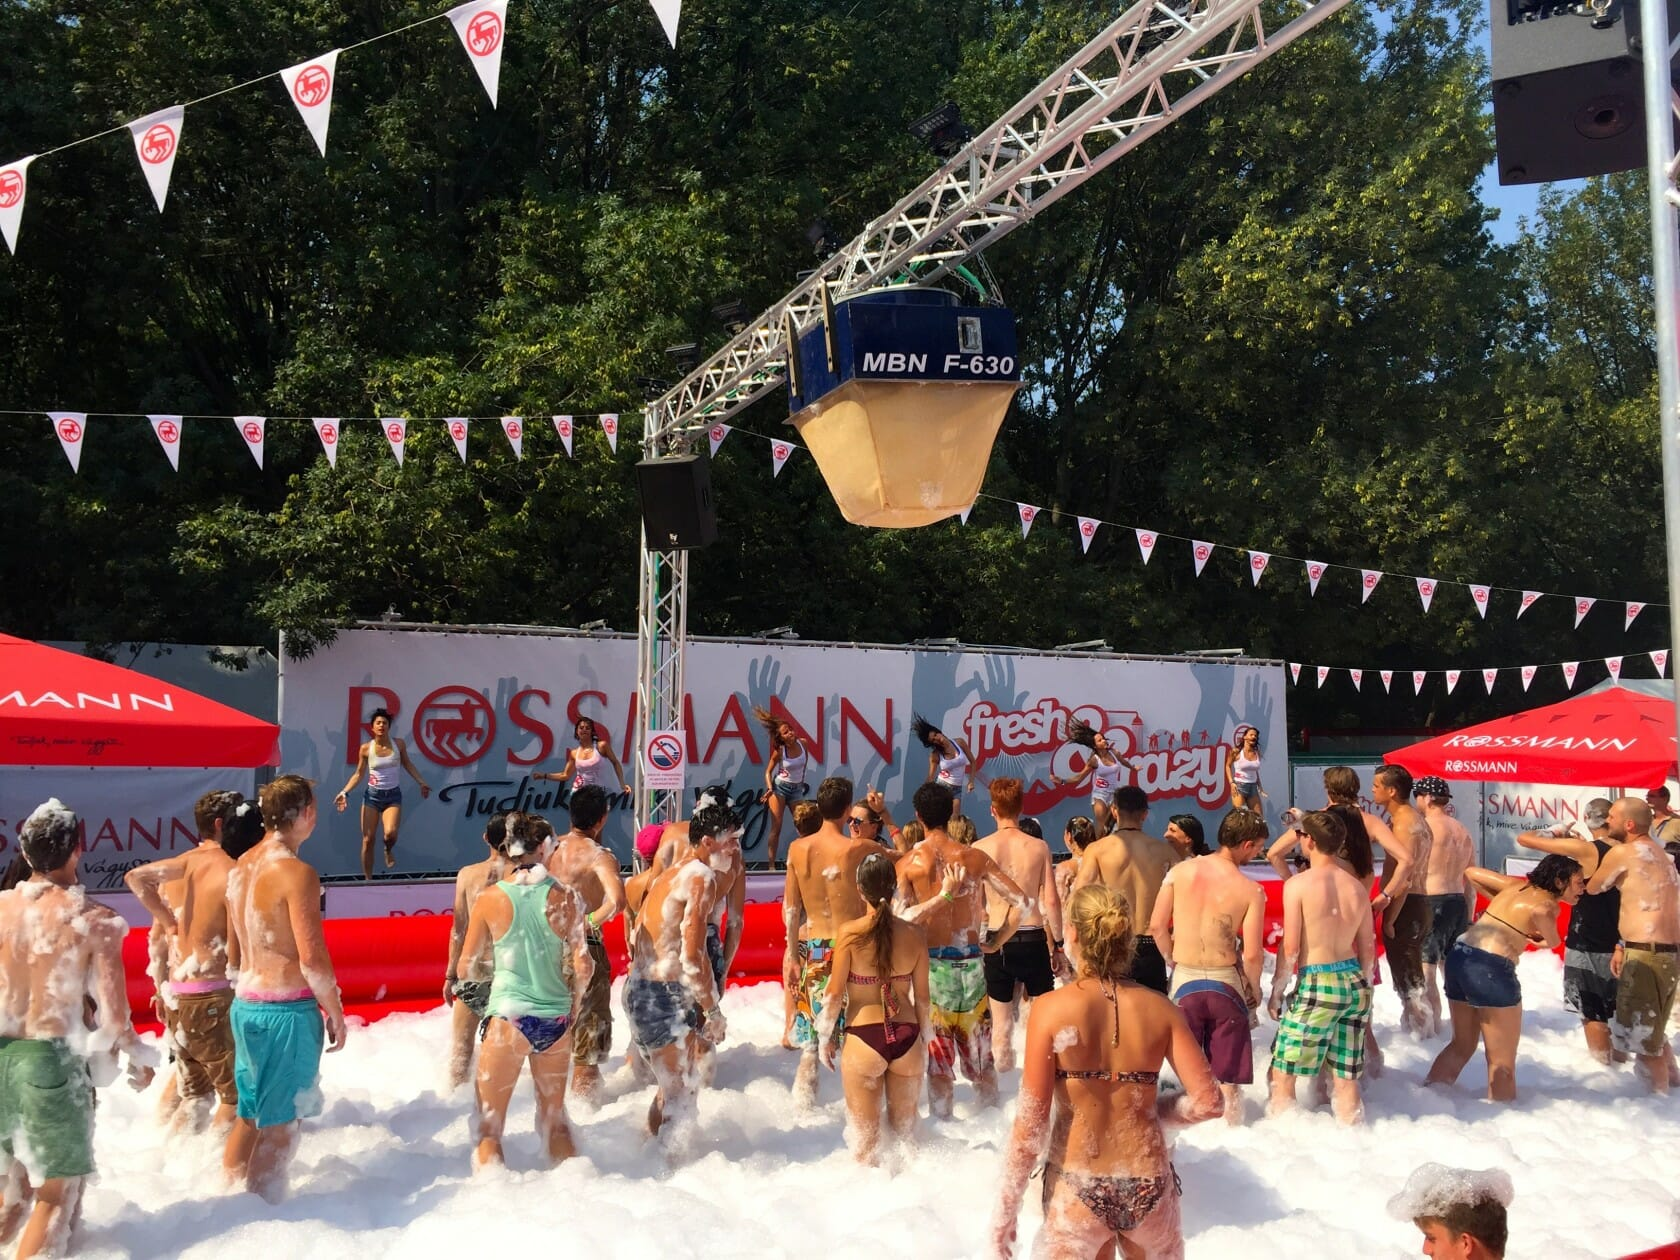 sziget review + festival guide for sziget festival in budapest august foam party